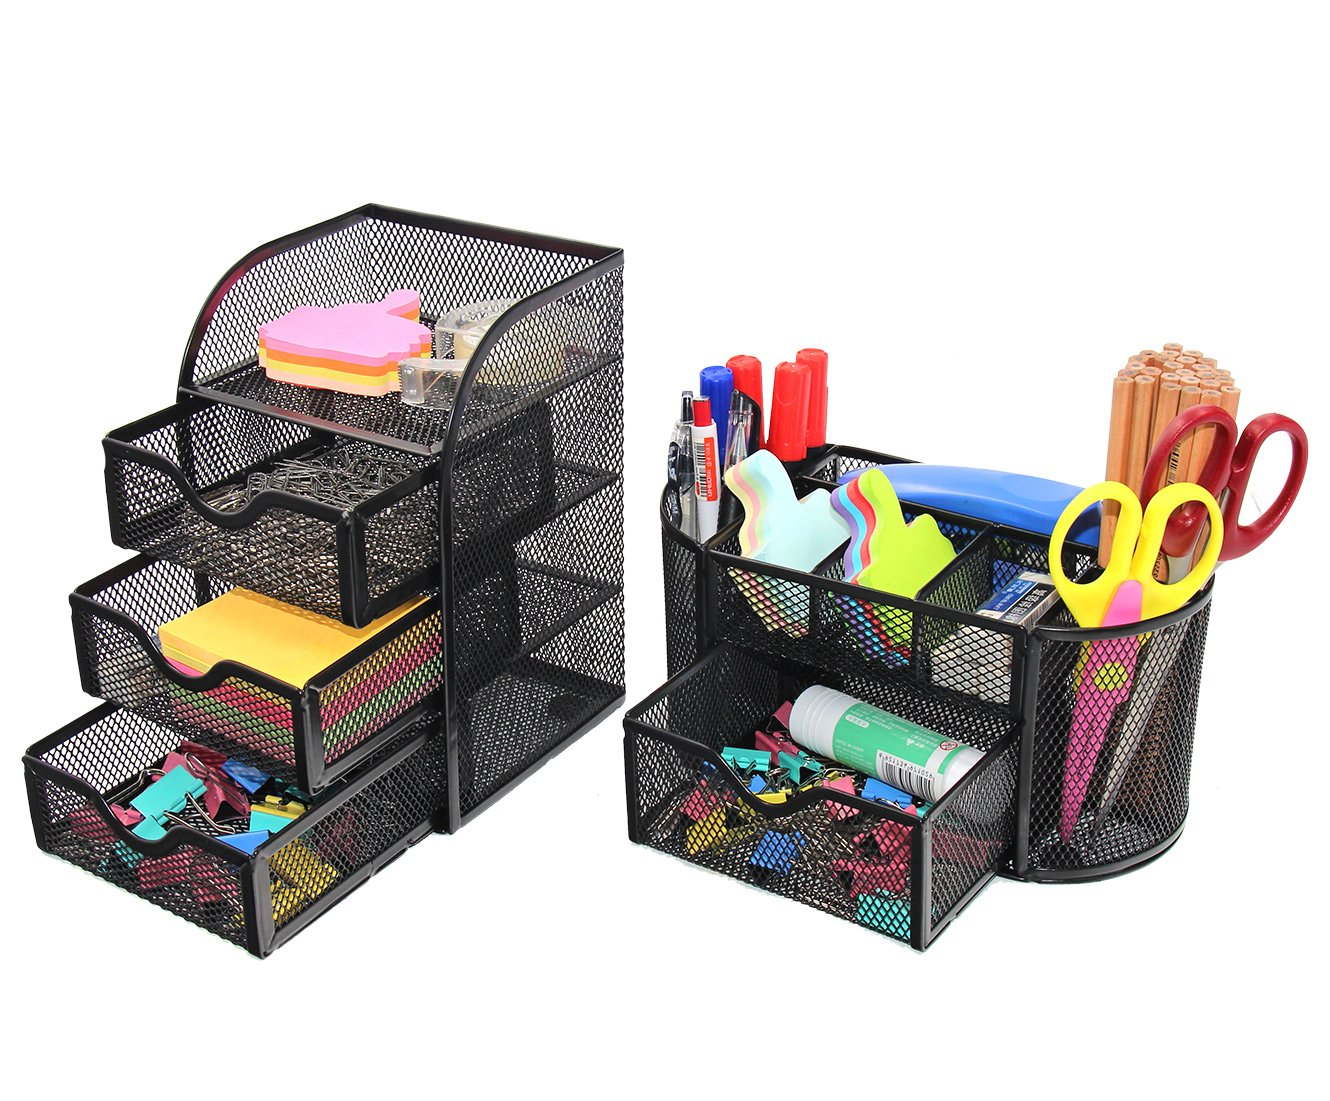 PAG Office Supplies Mesh Desk Organizer Set Pen Holder Accessories Storage Caddy with Drawer, Black